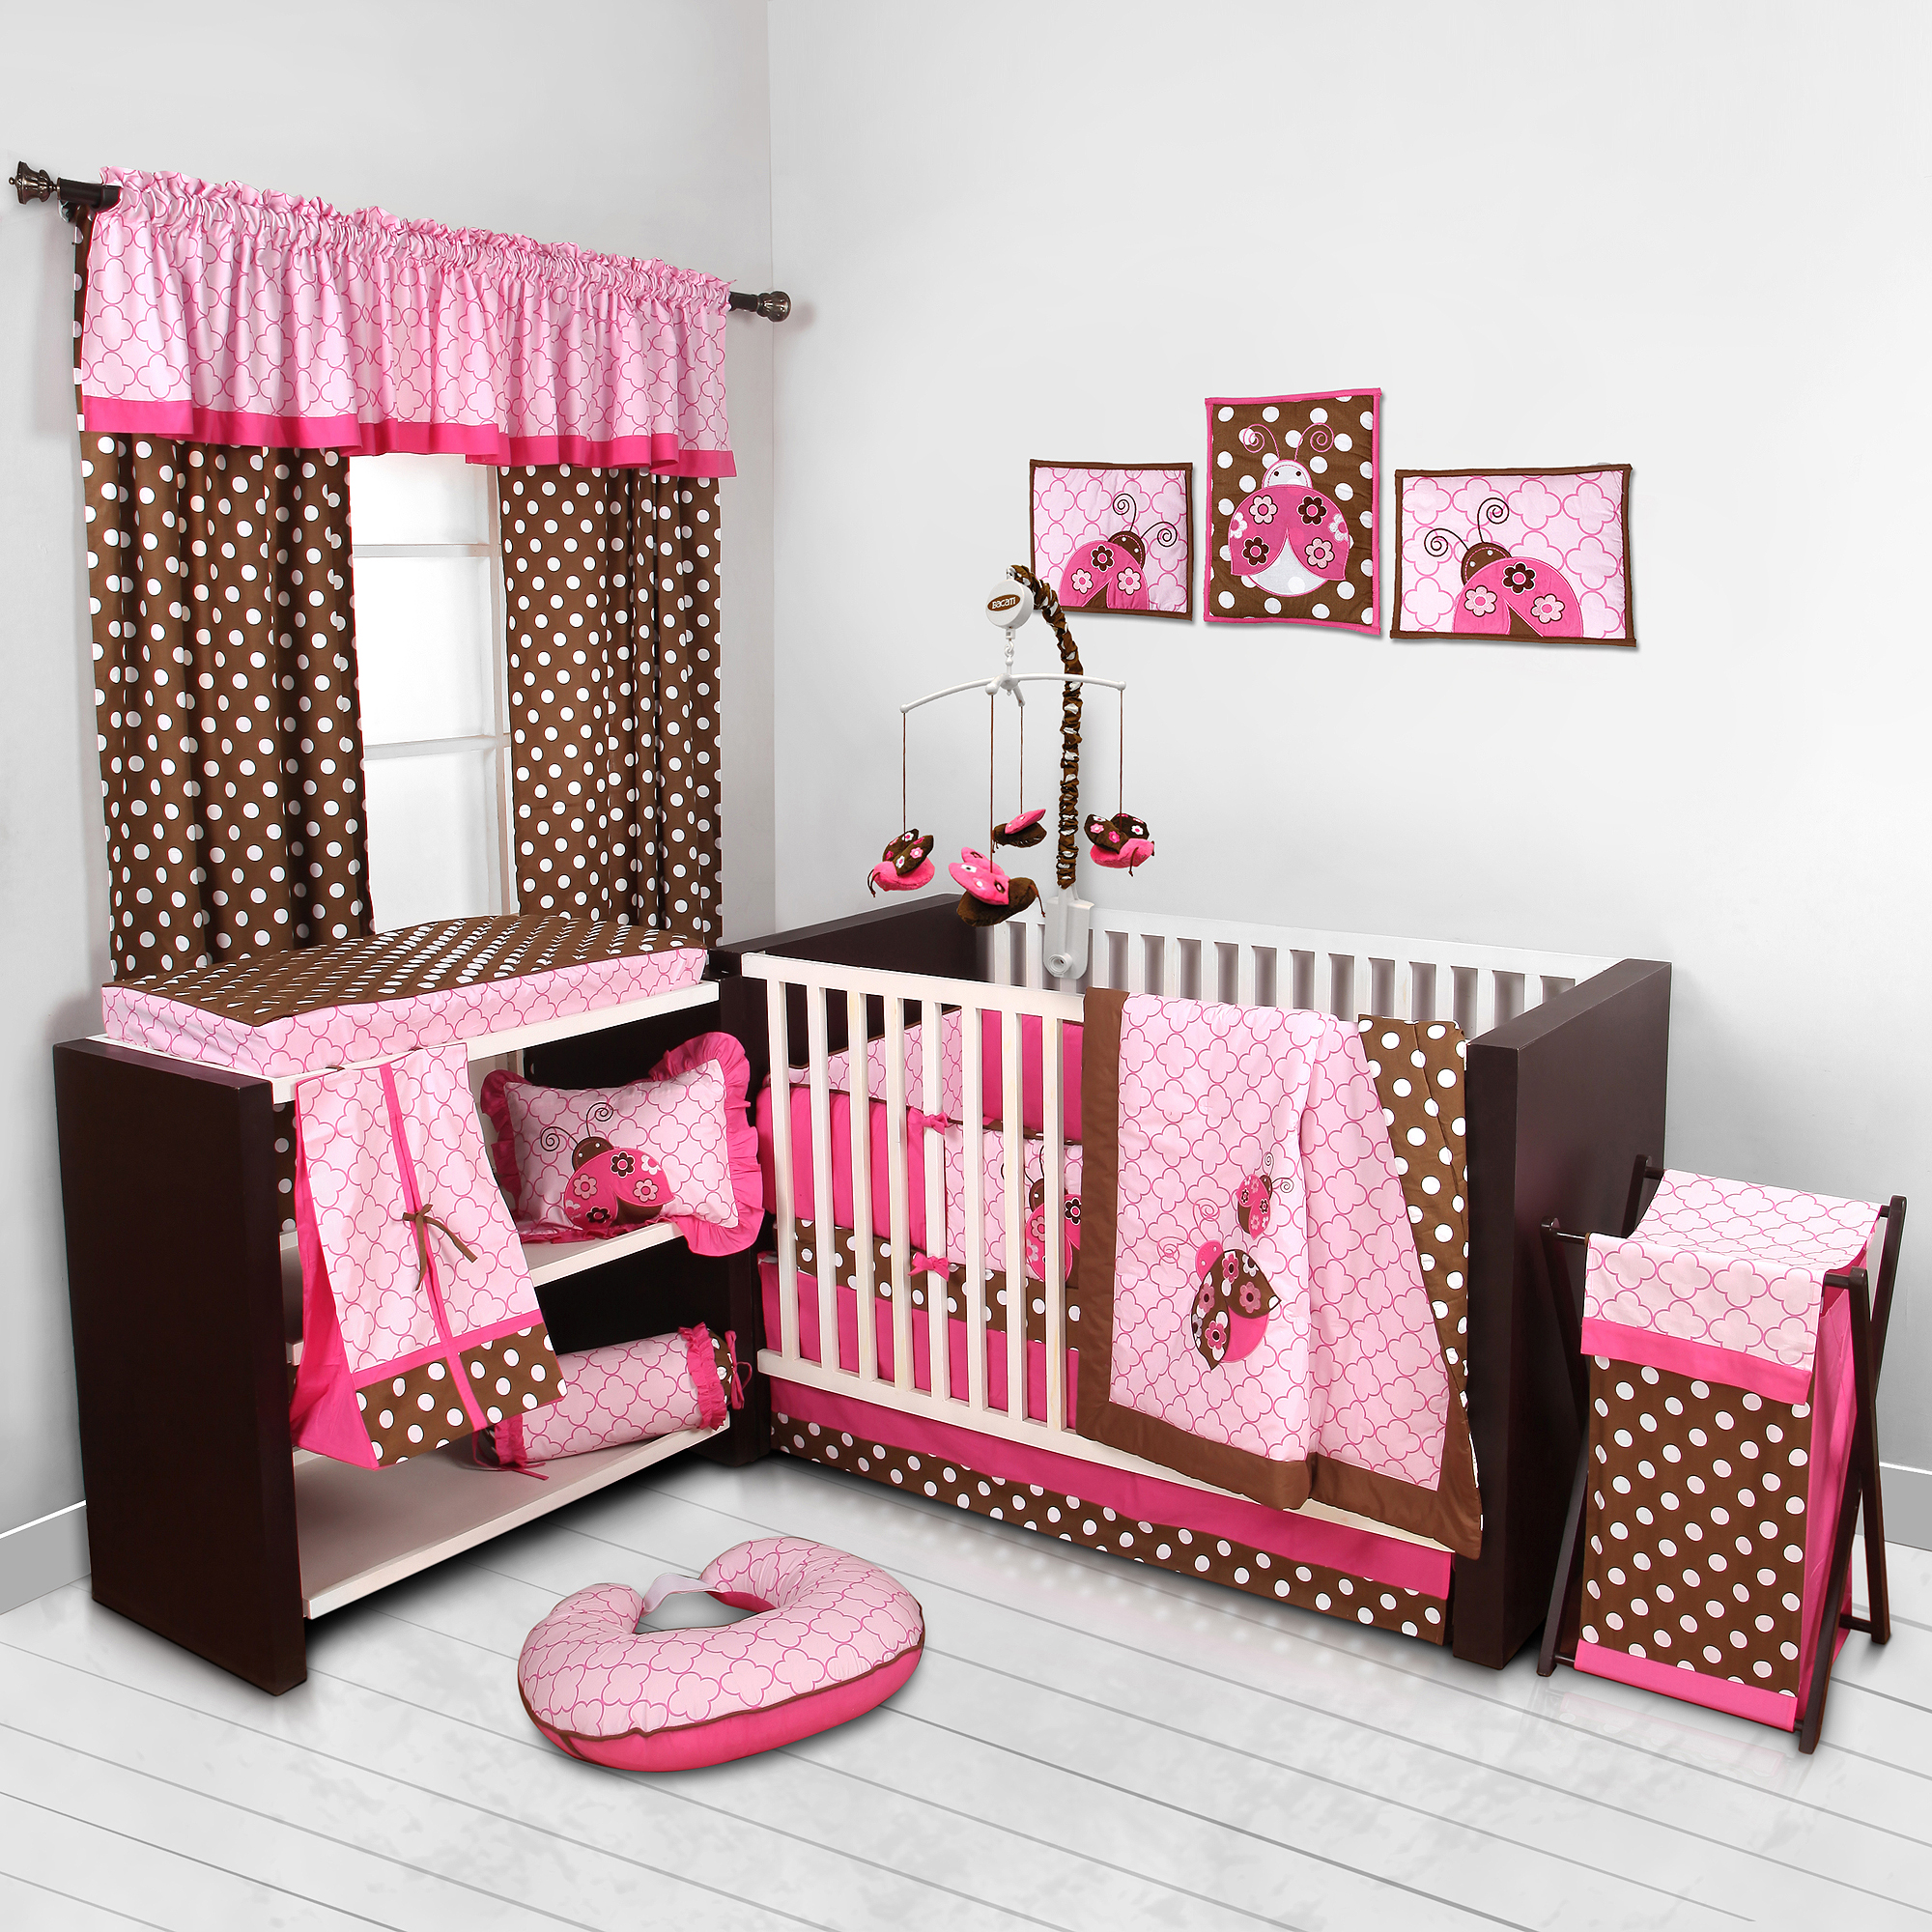 Bacati Lady Bugs Pink/Chocolate Girls 10-Piece Nursery-in-a-Bag Crib Bedding Set with Bumper Pad for US standard Cribs